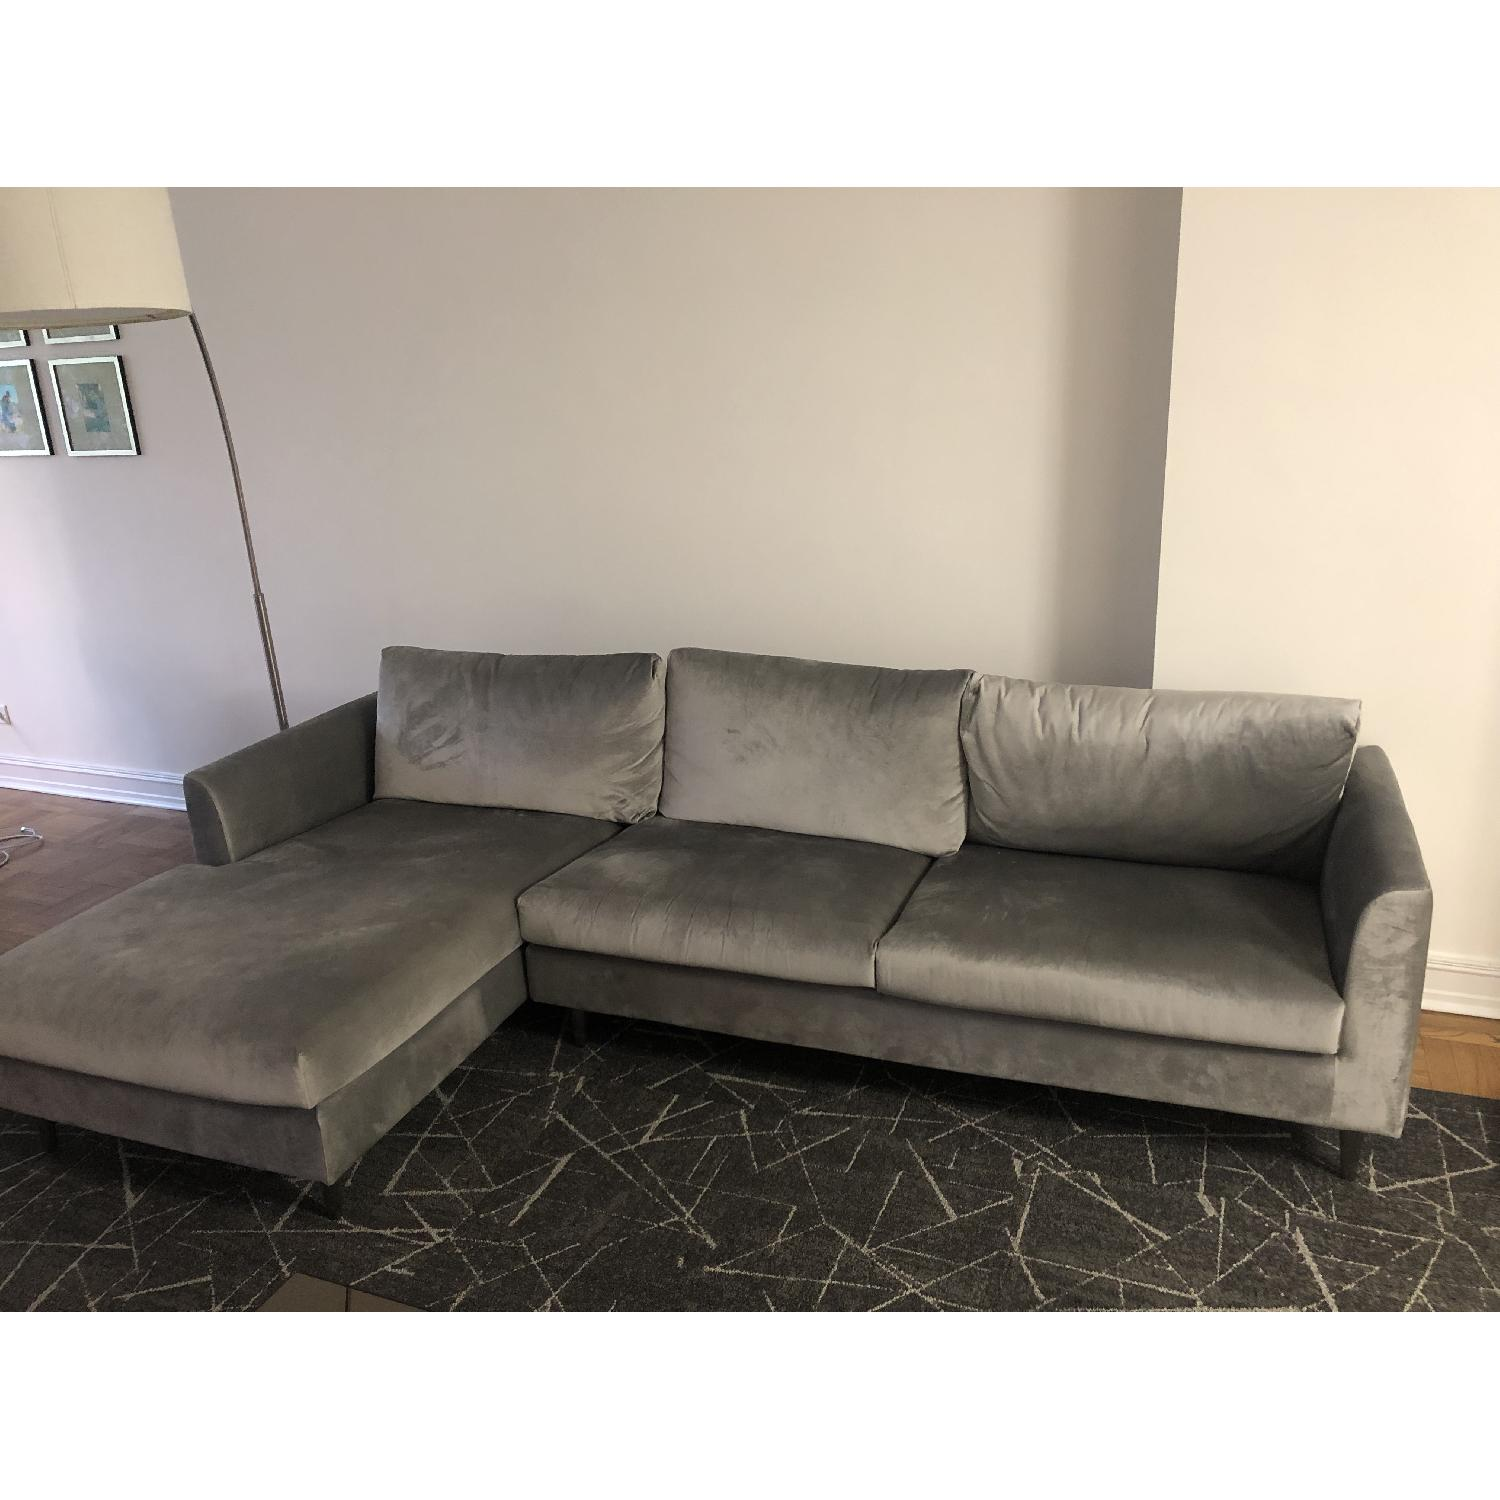 Interior Define Owens Sectional Sofa w/ Left Chaise - image-2